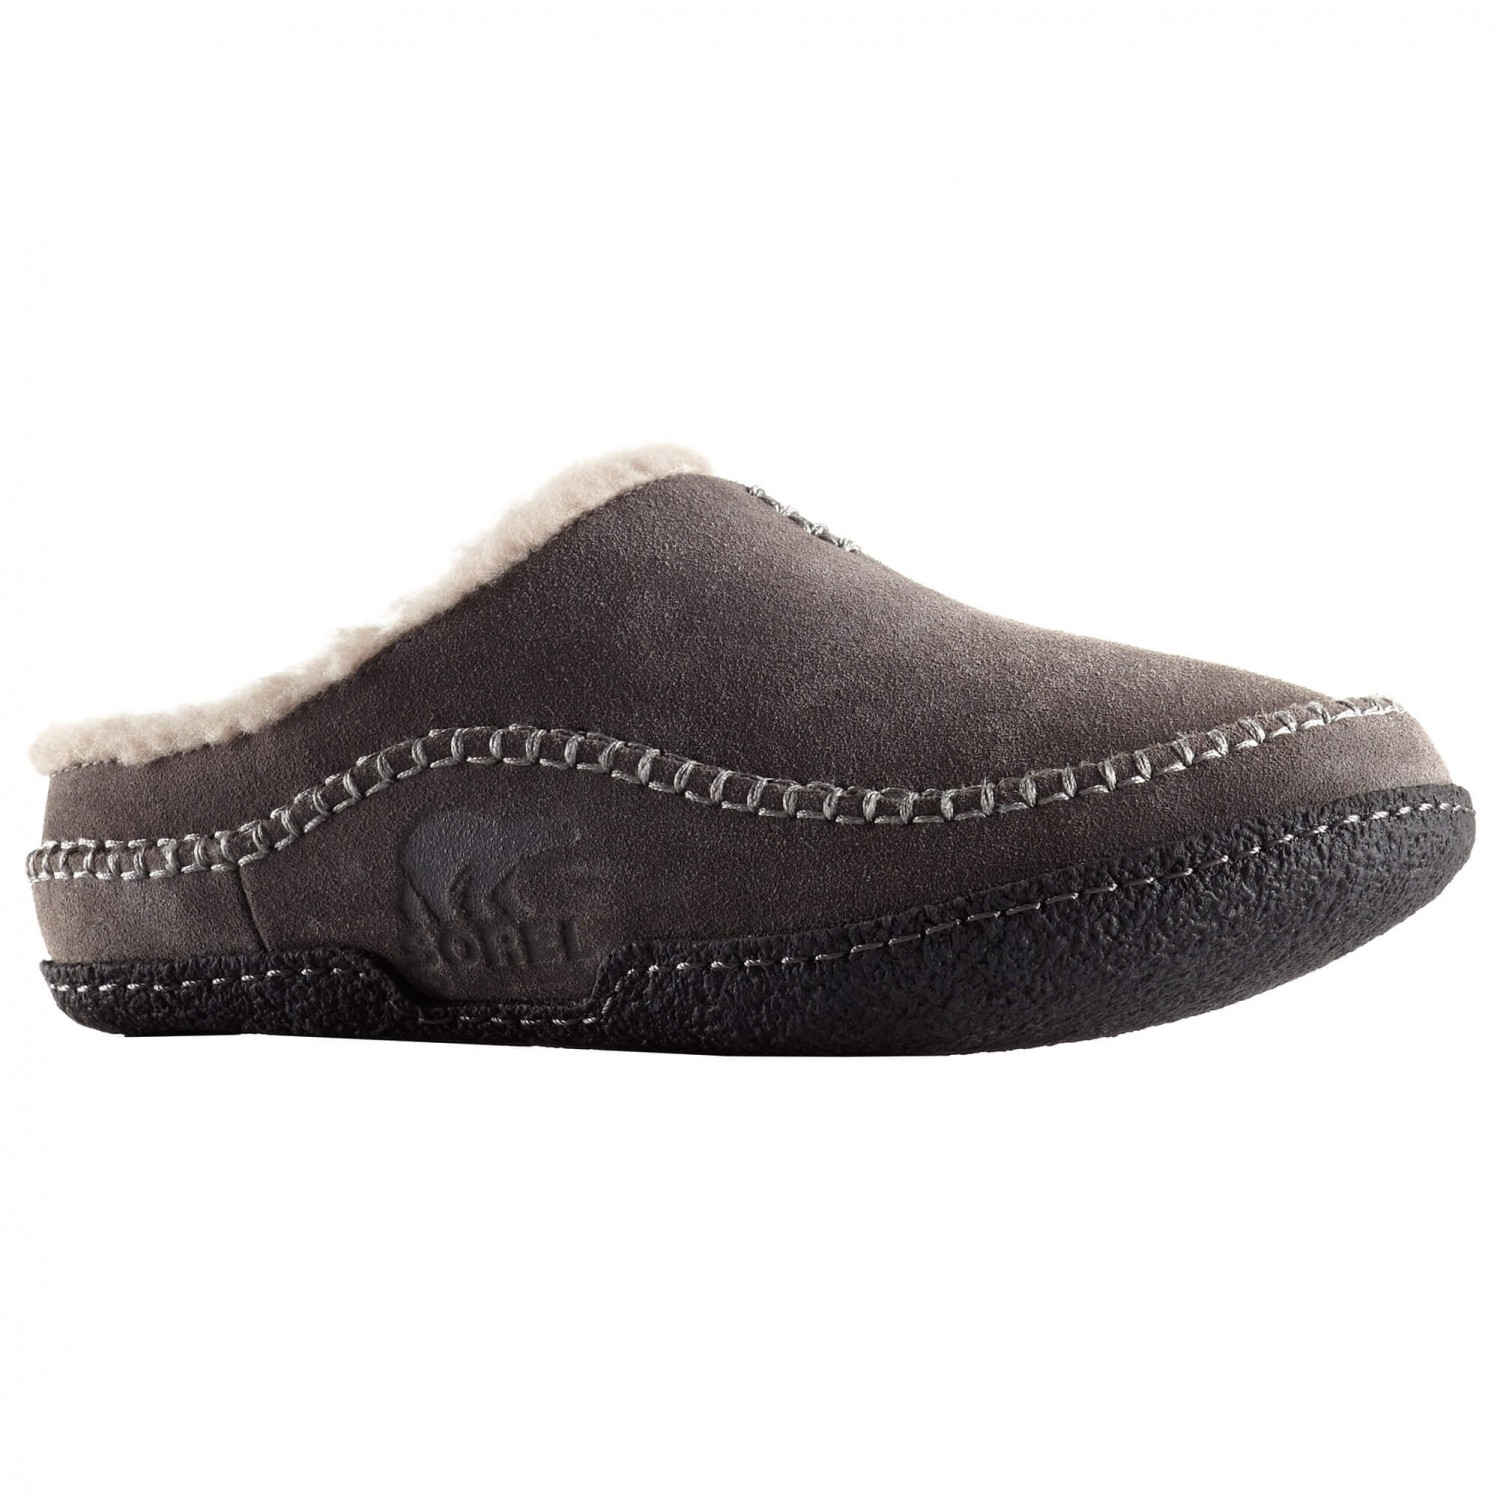 a4404b0895f Sorel Falcon Ridge - Slippers Men s